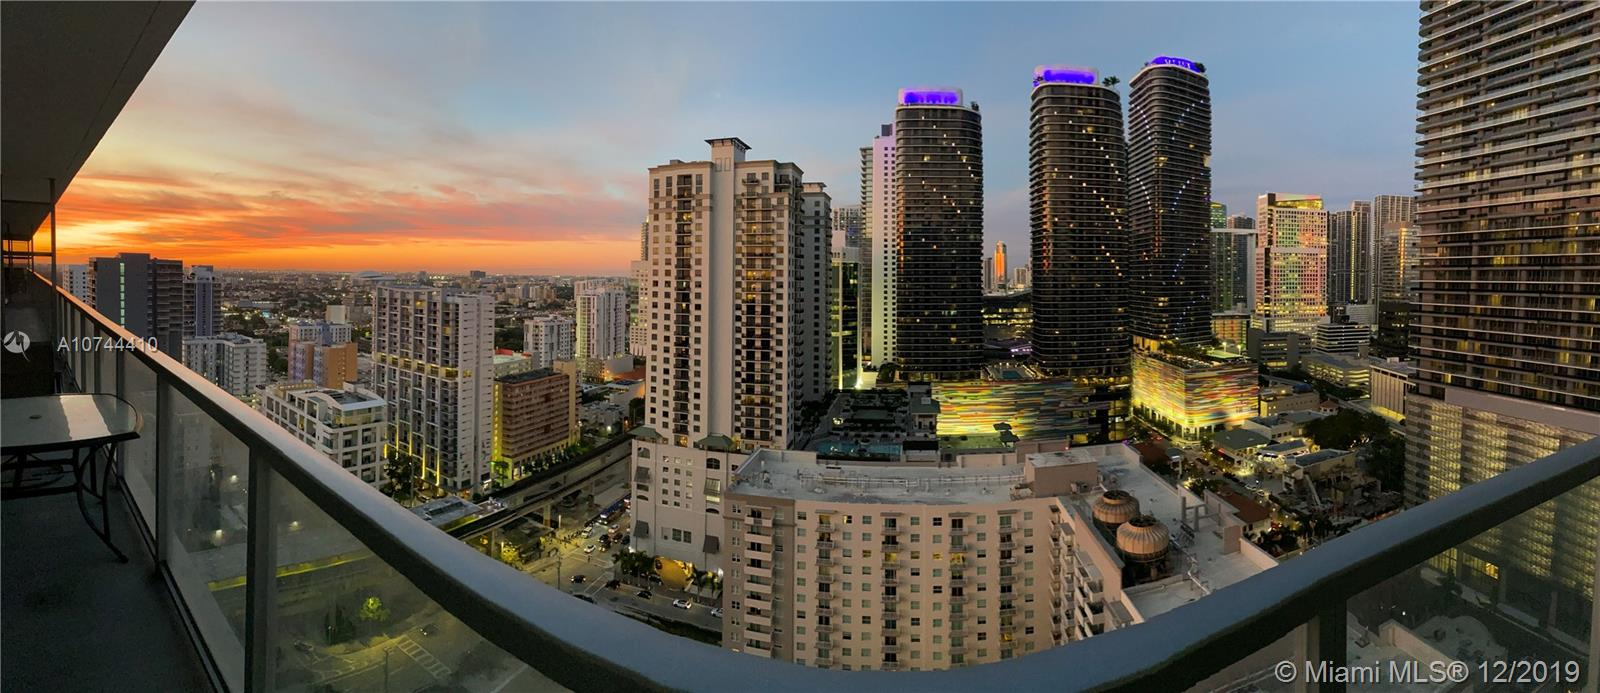 1111 SW 1st Ave, Miami, Florida 33130, 2 Bedrooms Bedrooms, ,2 BathroomsBathrooms,Residential,For Sale,1111 SW 1st Ave,A10744410